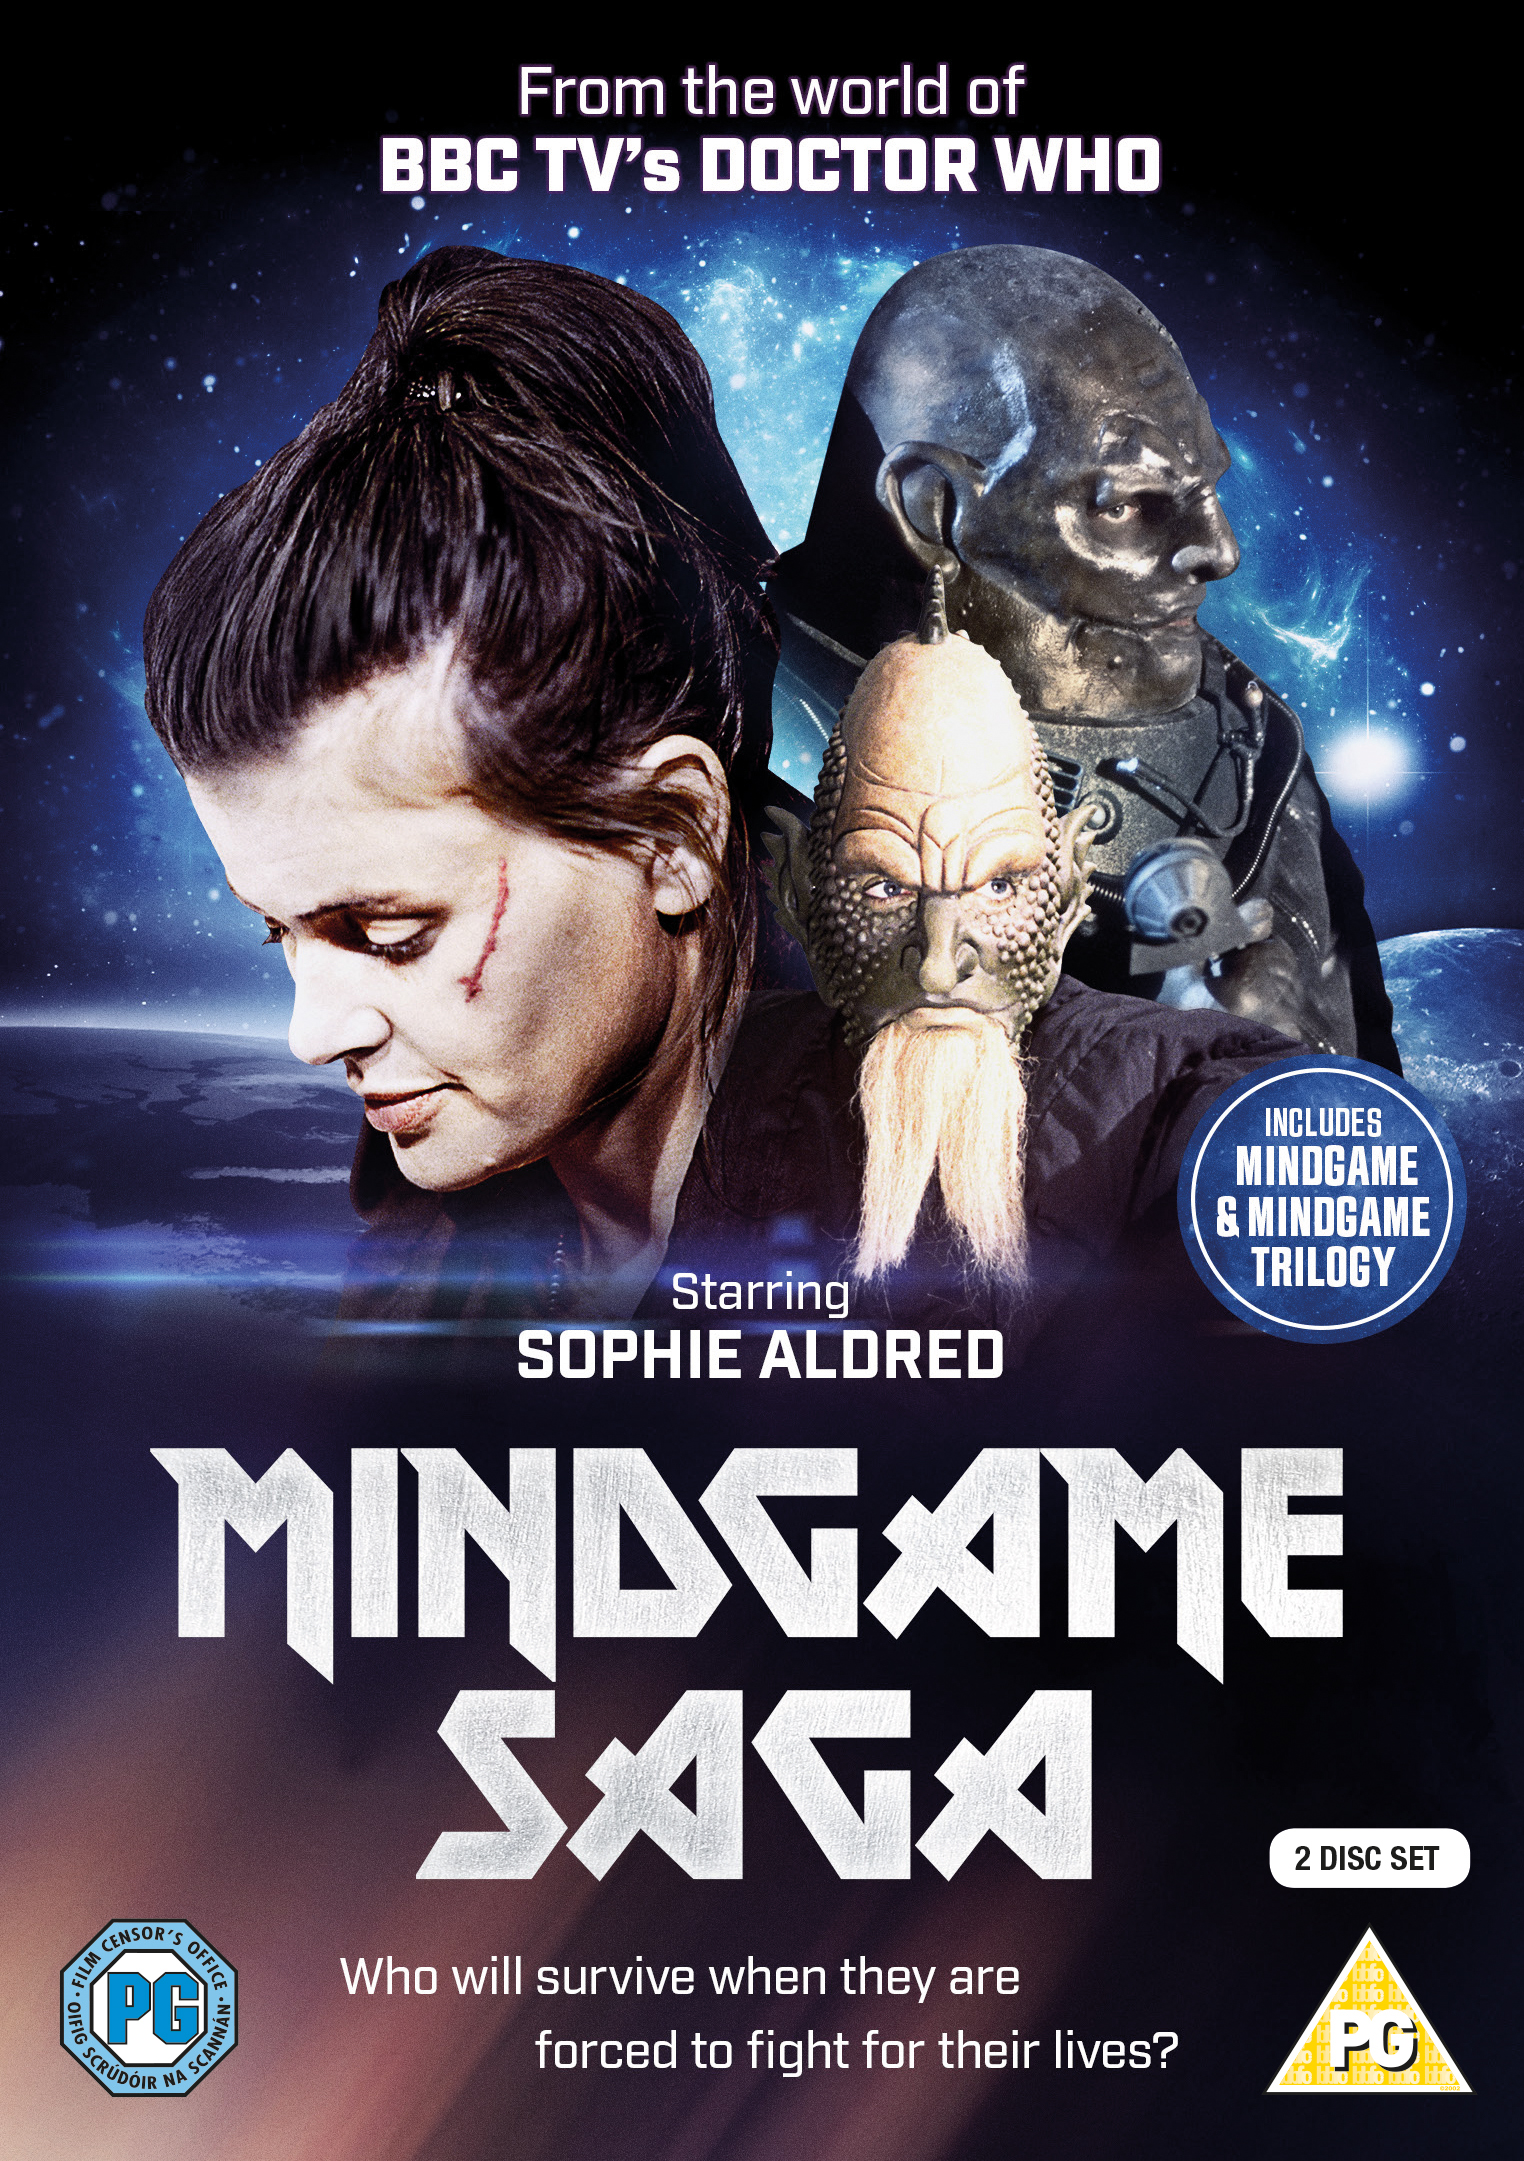 Mindgame Saga DVD review: bygone Doctor Who